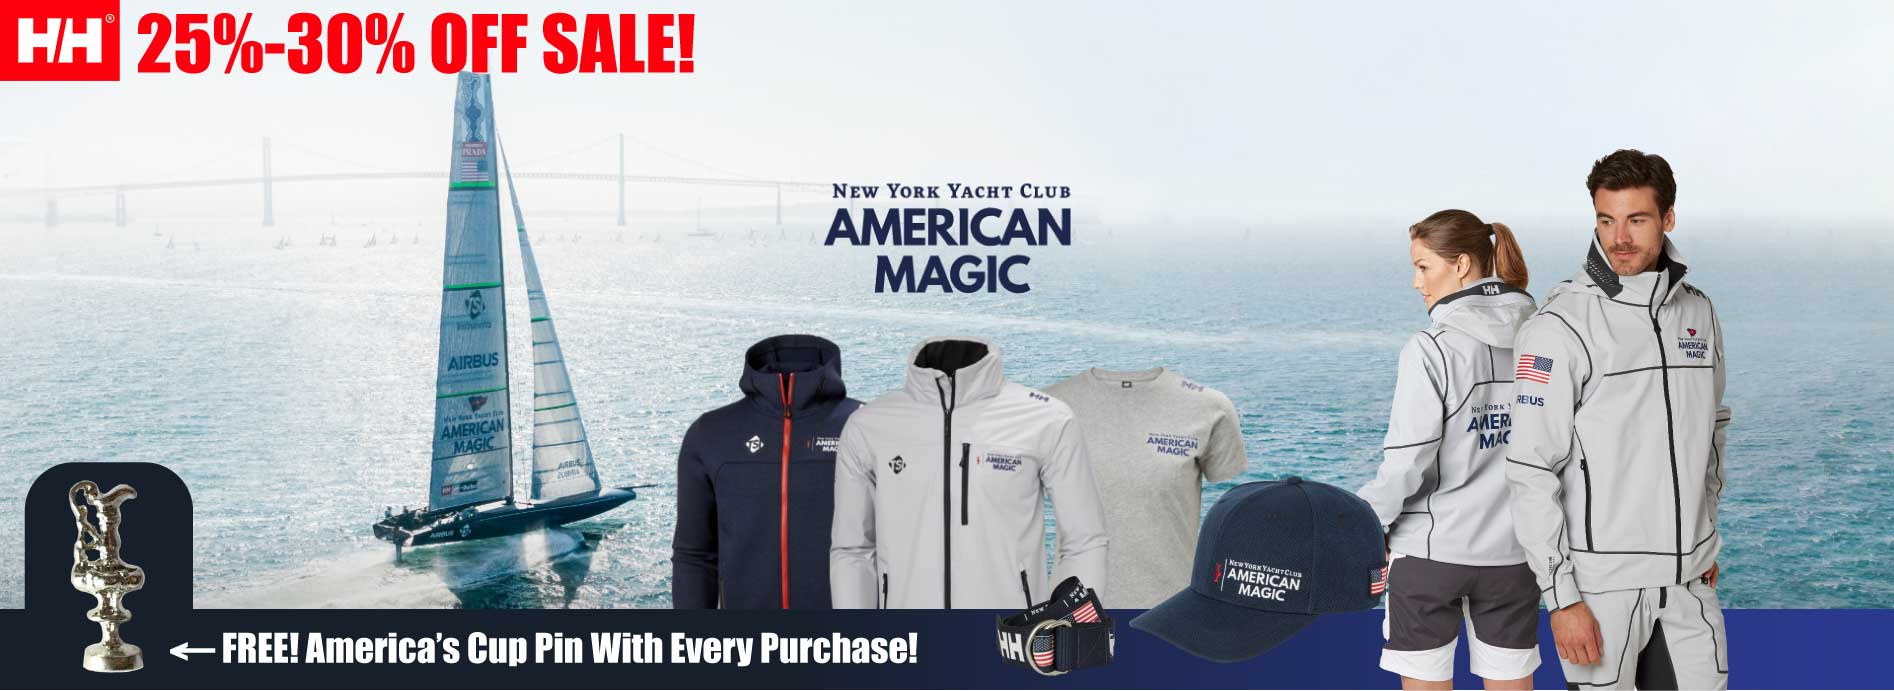 helly-hansen-american-magic-sale-banner-25-30.jpg